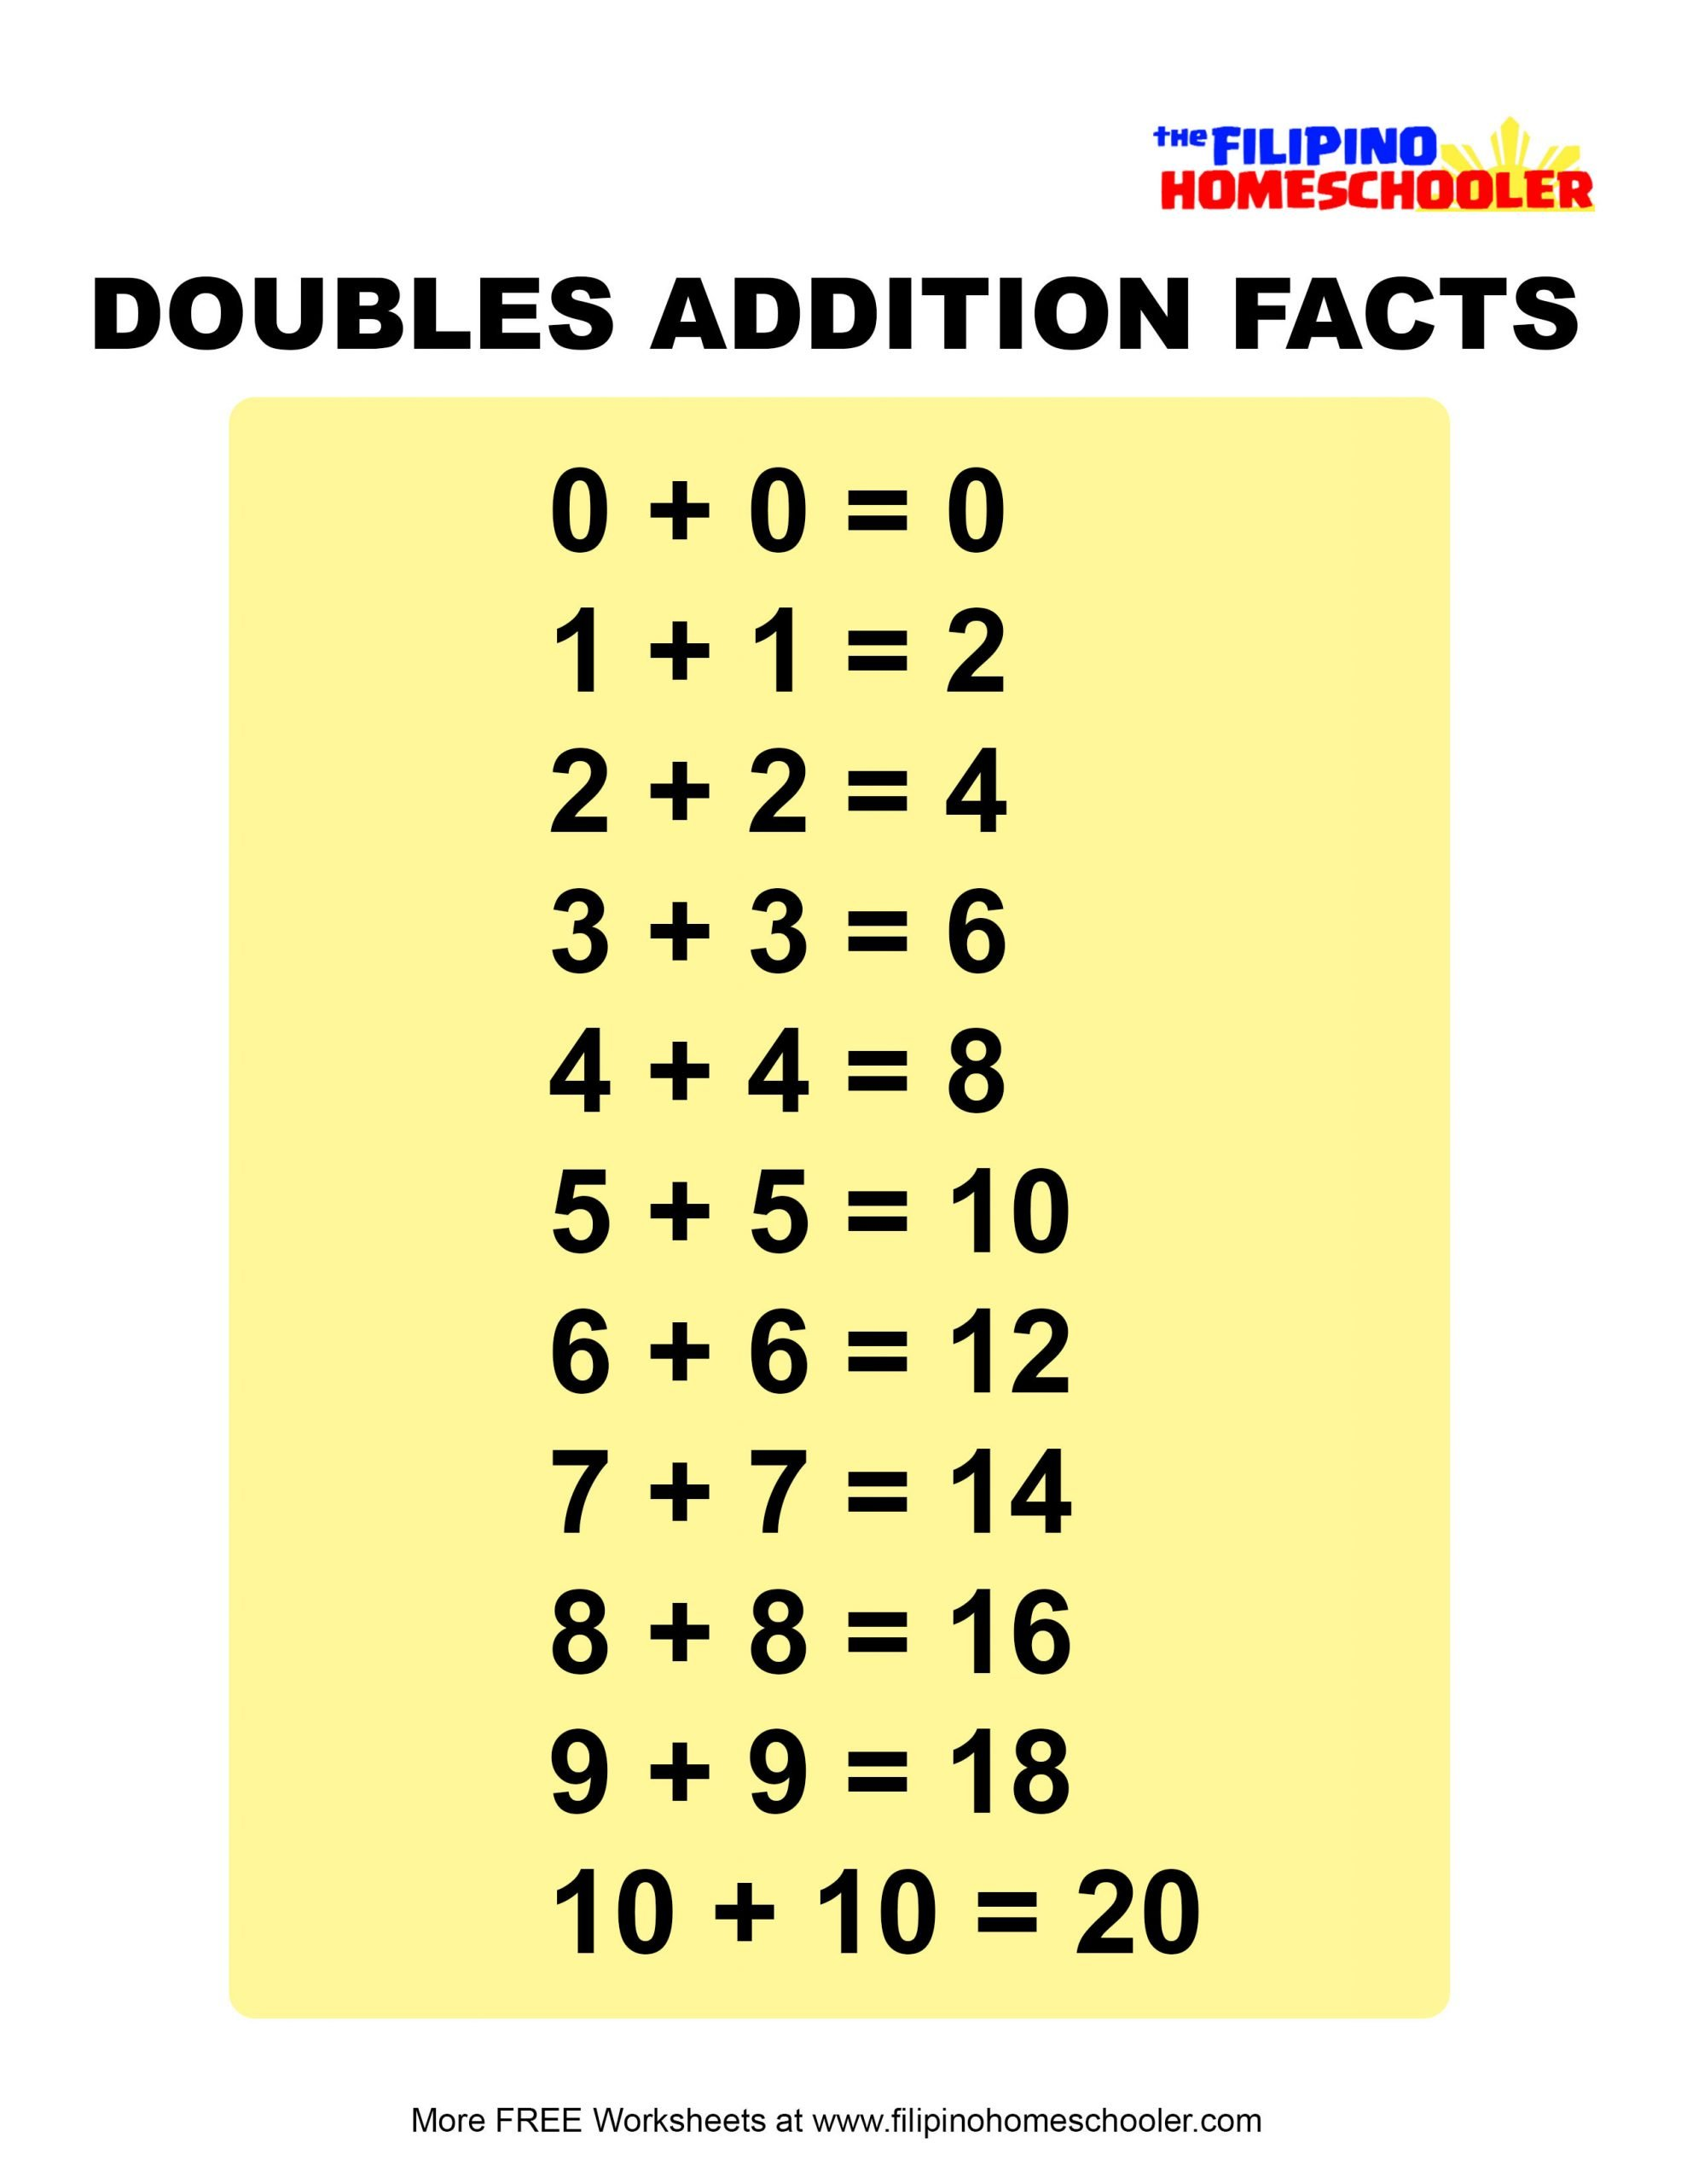 Addition Facts Doubles